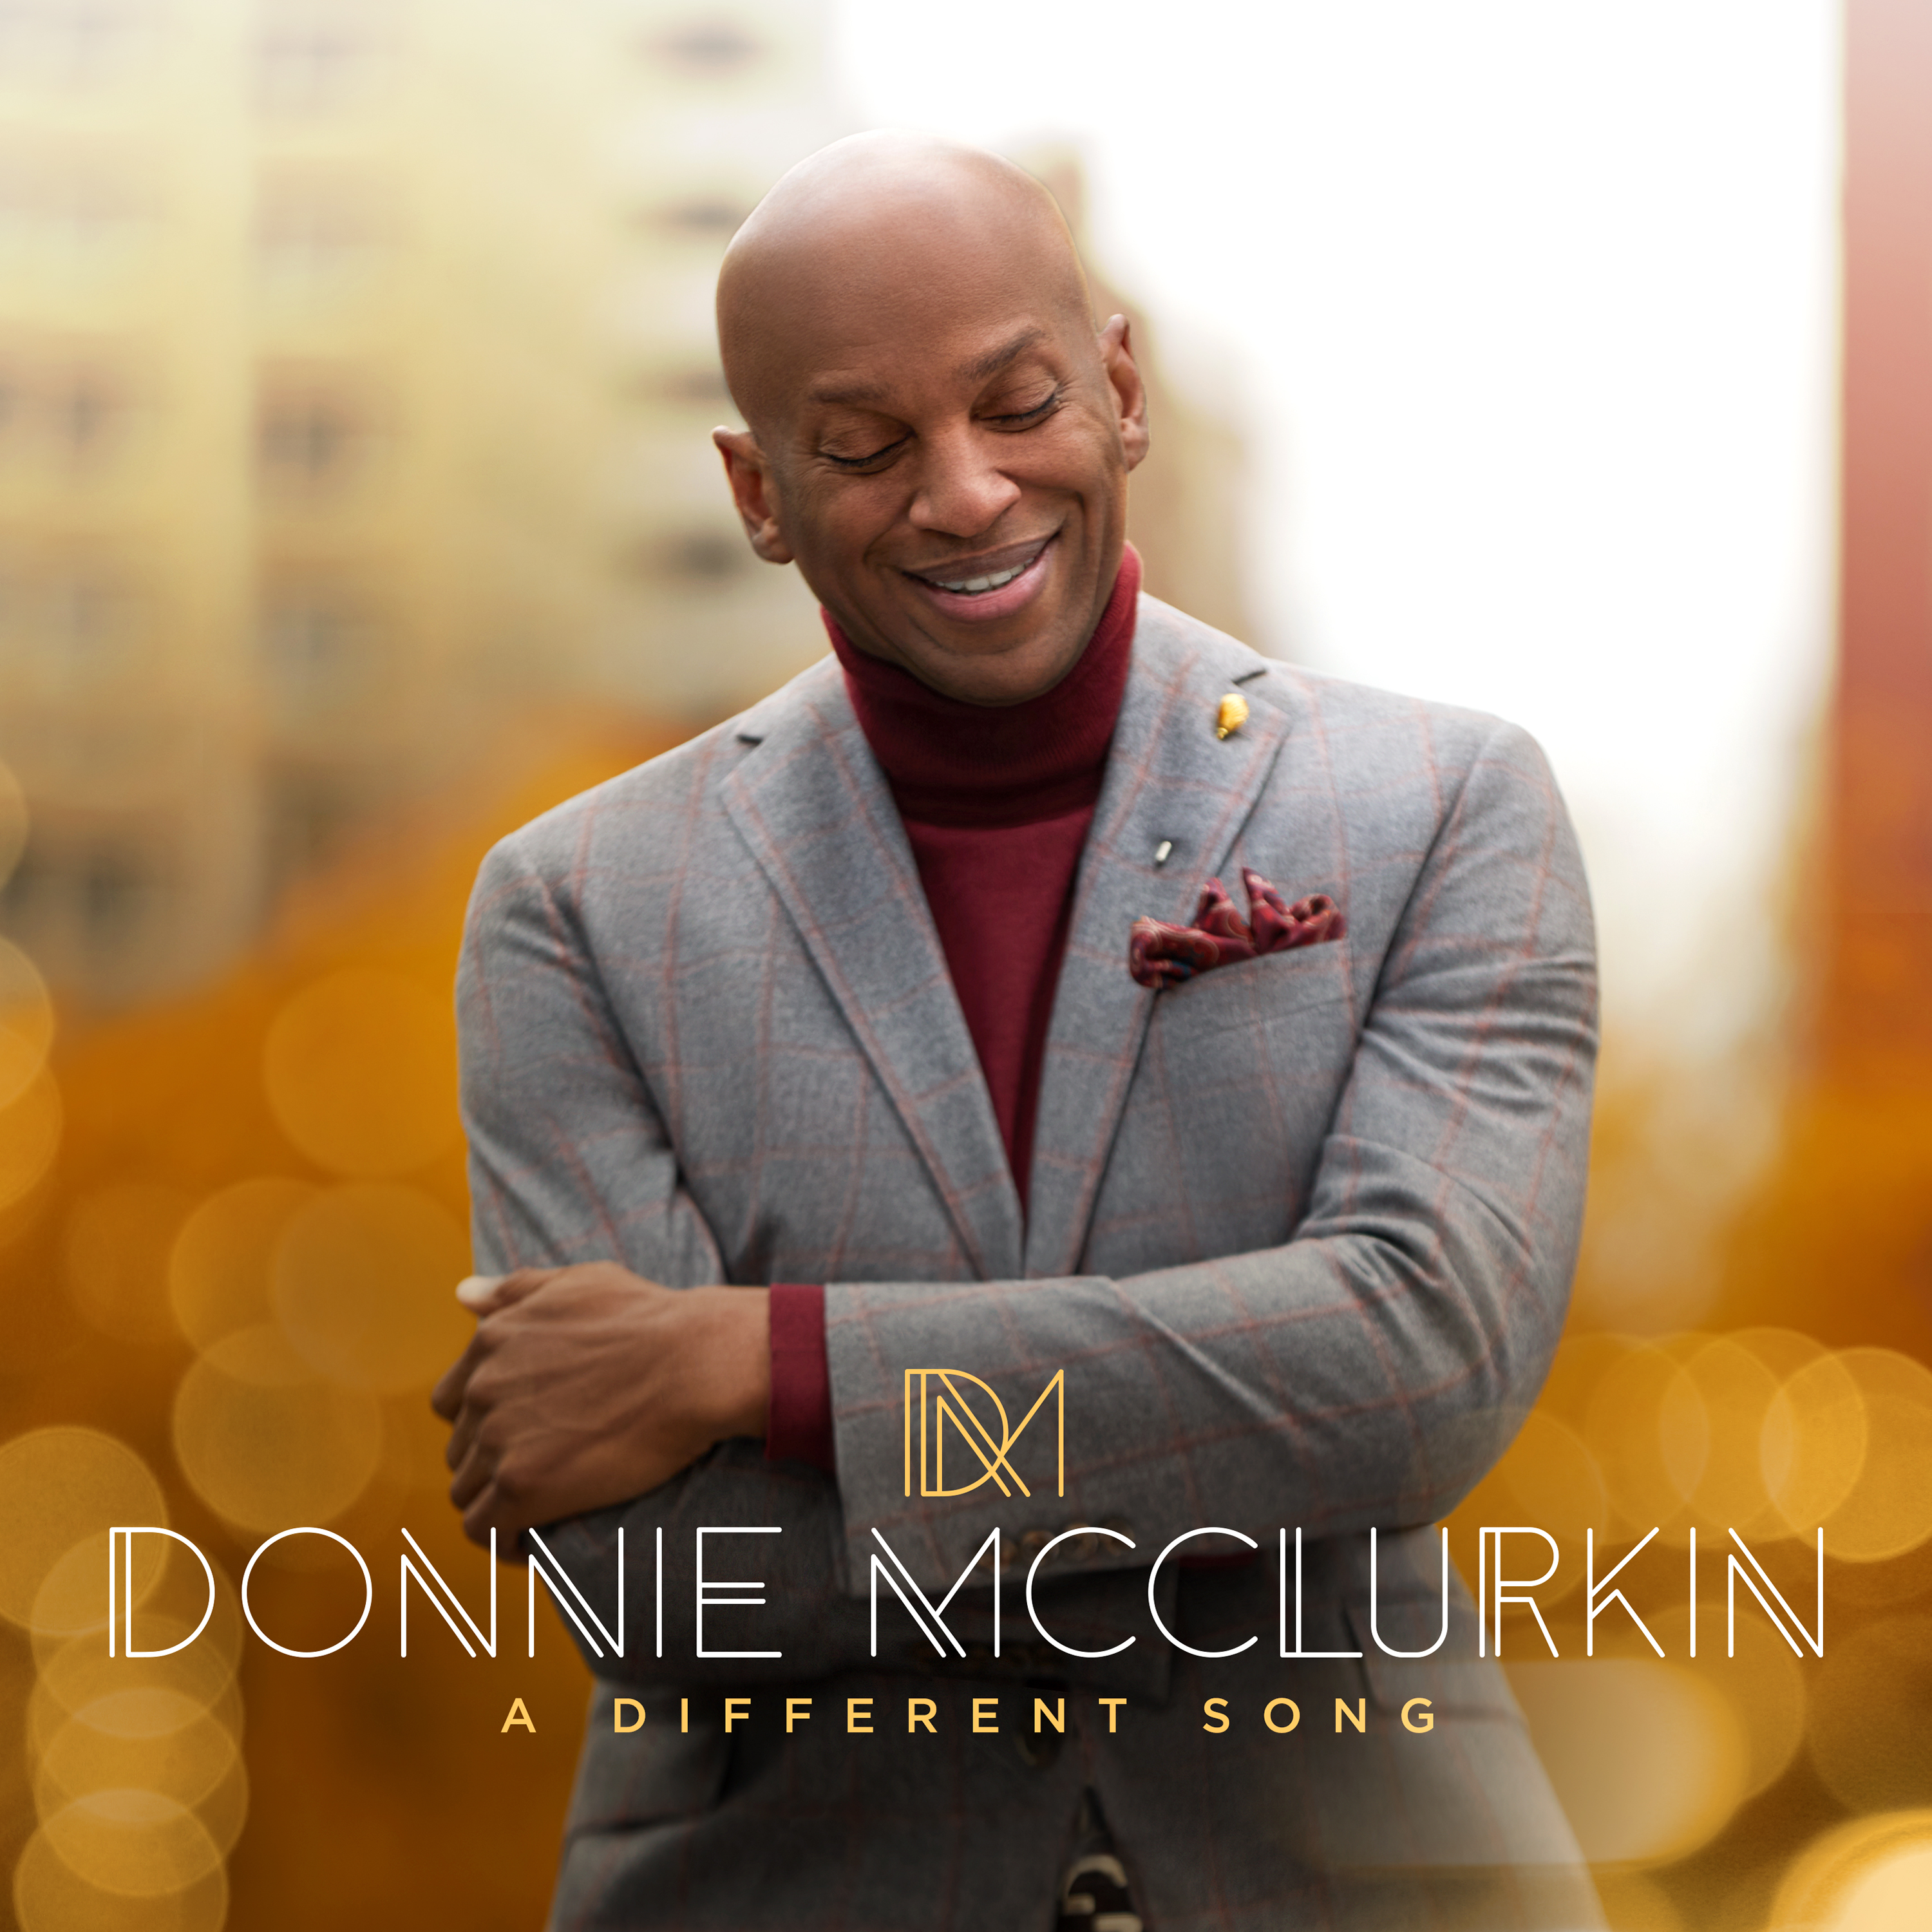 Donnie McClurkin's New Album, A Different Song, Available Now!